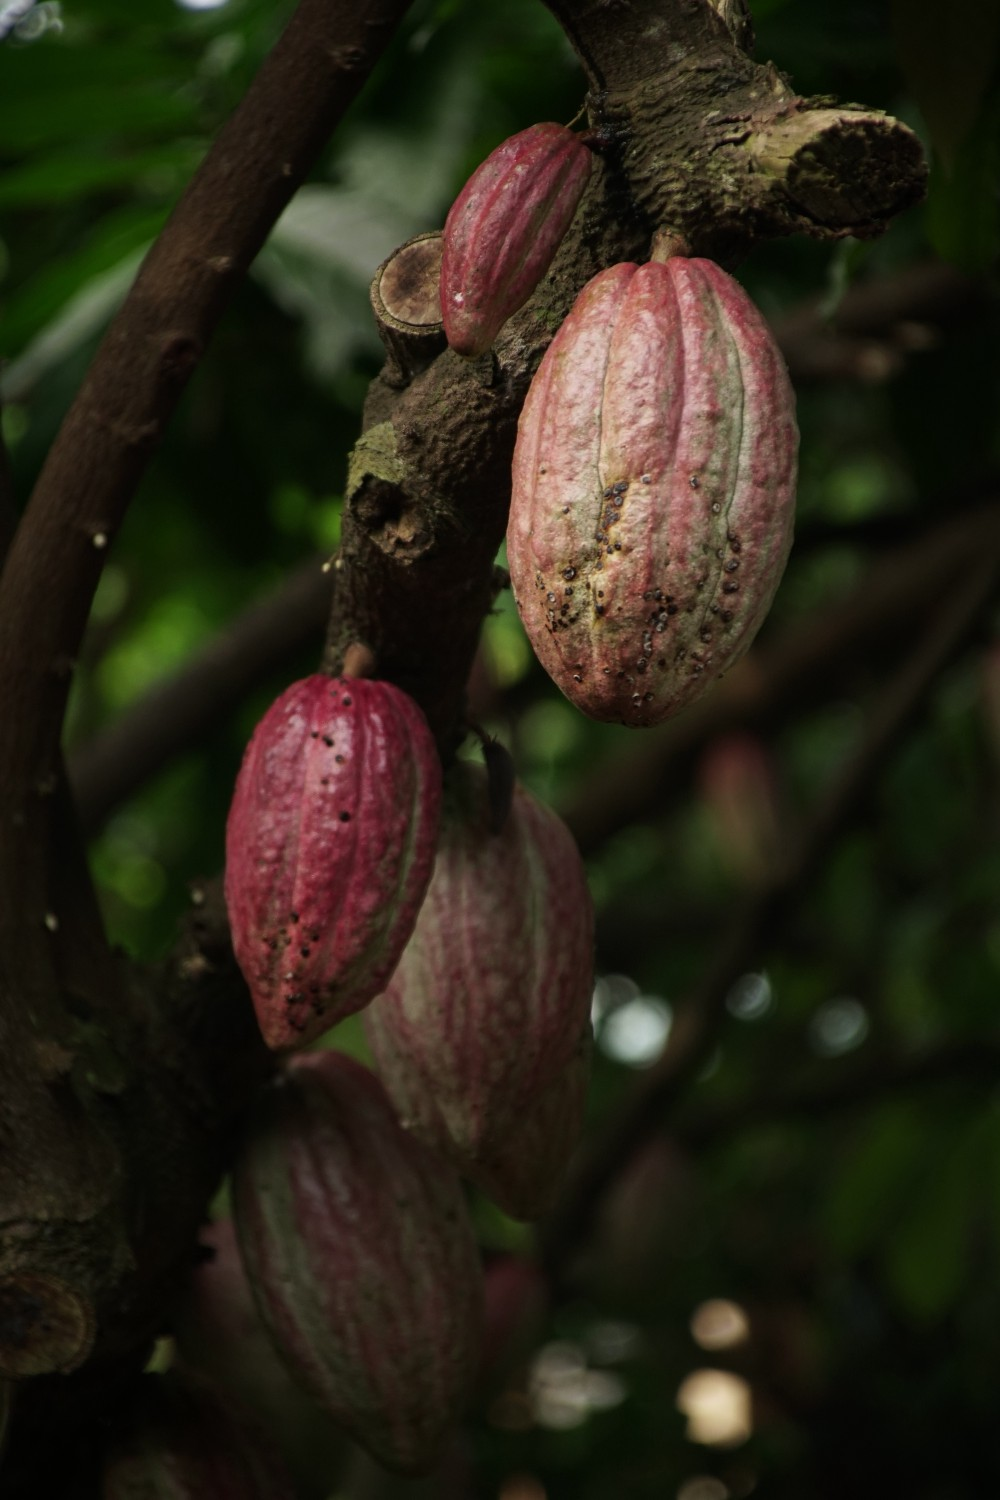 Photo of cocoa beans growing on a tree. The cocoa bean or simply cocoa, which is also called the cacao bean is the dried and fully fermented seed of Theobroma cacao, from which cocoa solids and cocoa butter can be extracted. They are almost small pear-shaped bullet-like nuts in their shape. Colours ranging from orange through to light brown/red shades.